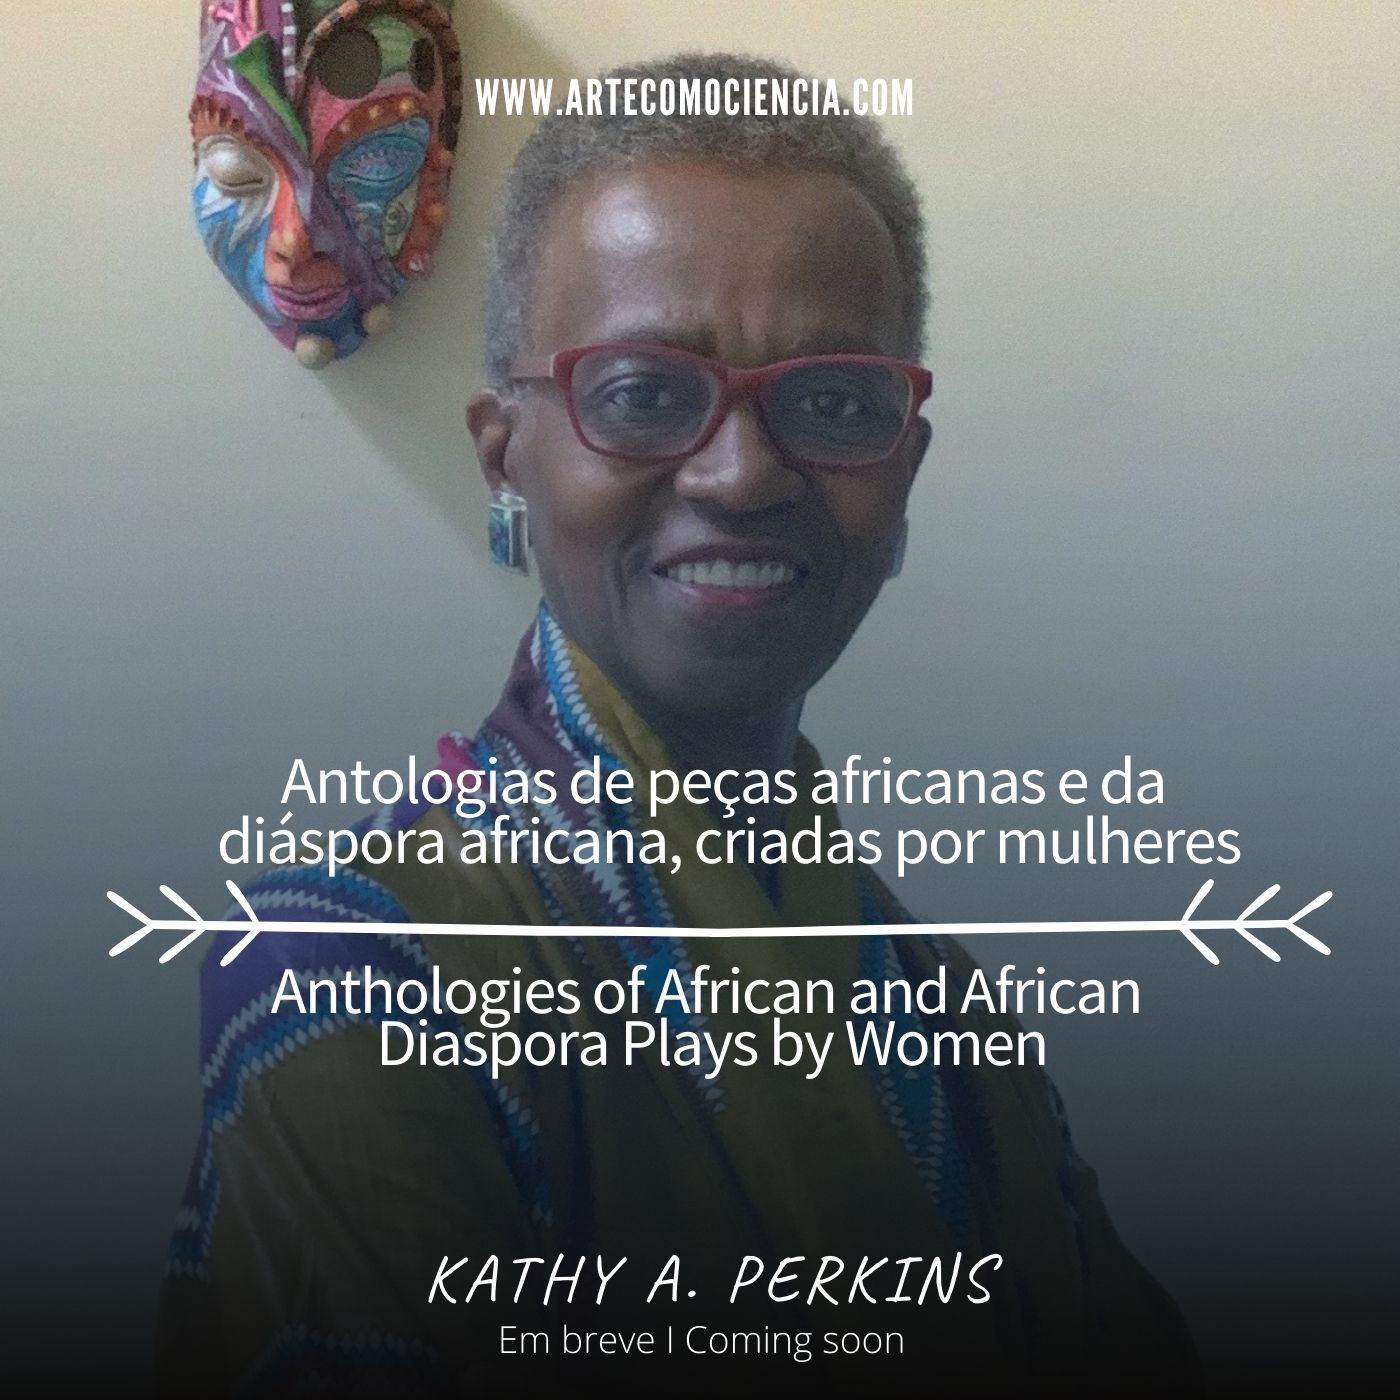 Kathy A. Perkins: Anthologies of African and African Diaspora Plays by Women/Antologias de peças afr